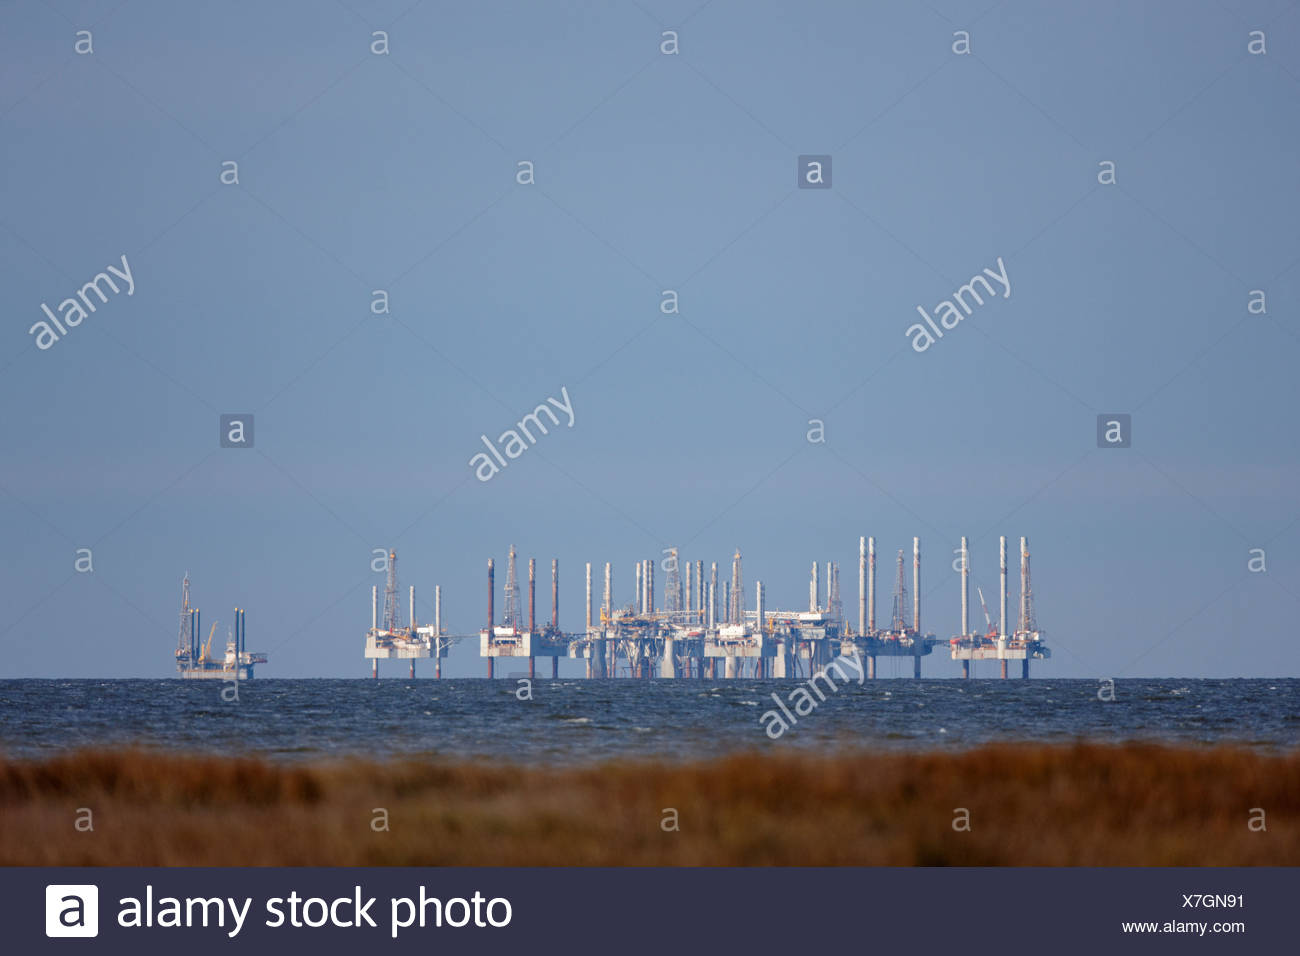 Oil platforms in the Gulf of Mexico, near Cameron, Louisiana. - Stock Image